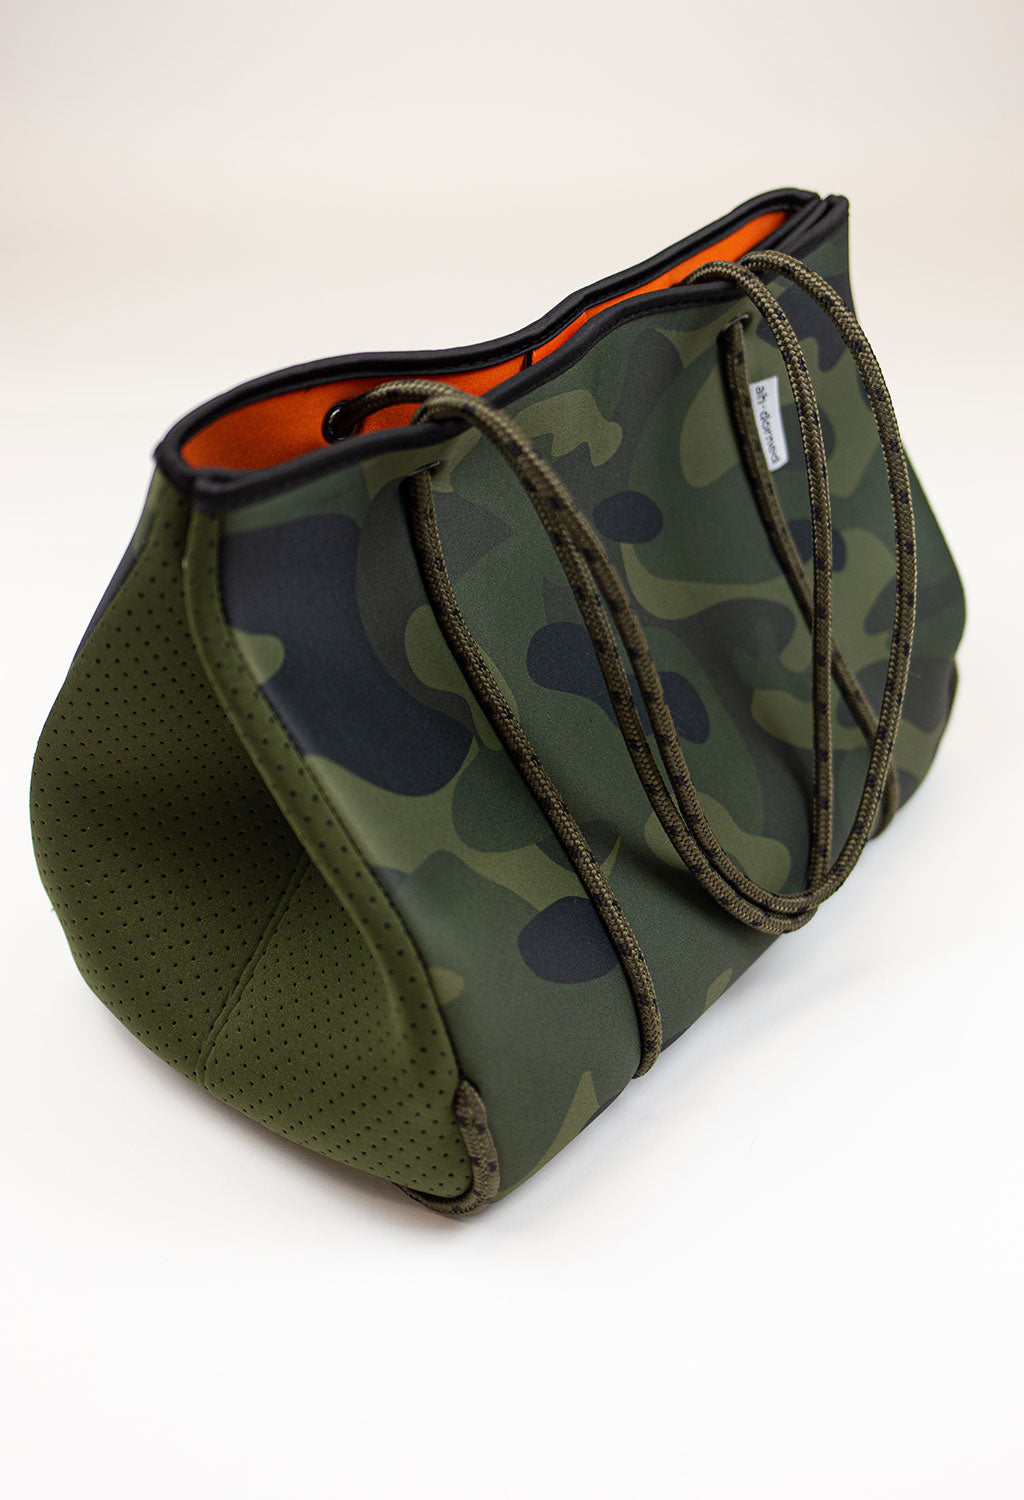 Army Camo w/ Army Perforated Sides Tote